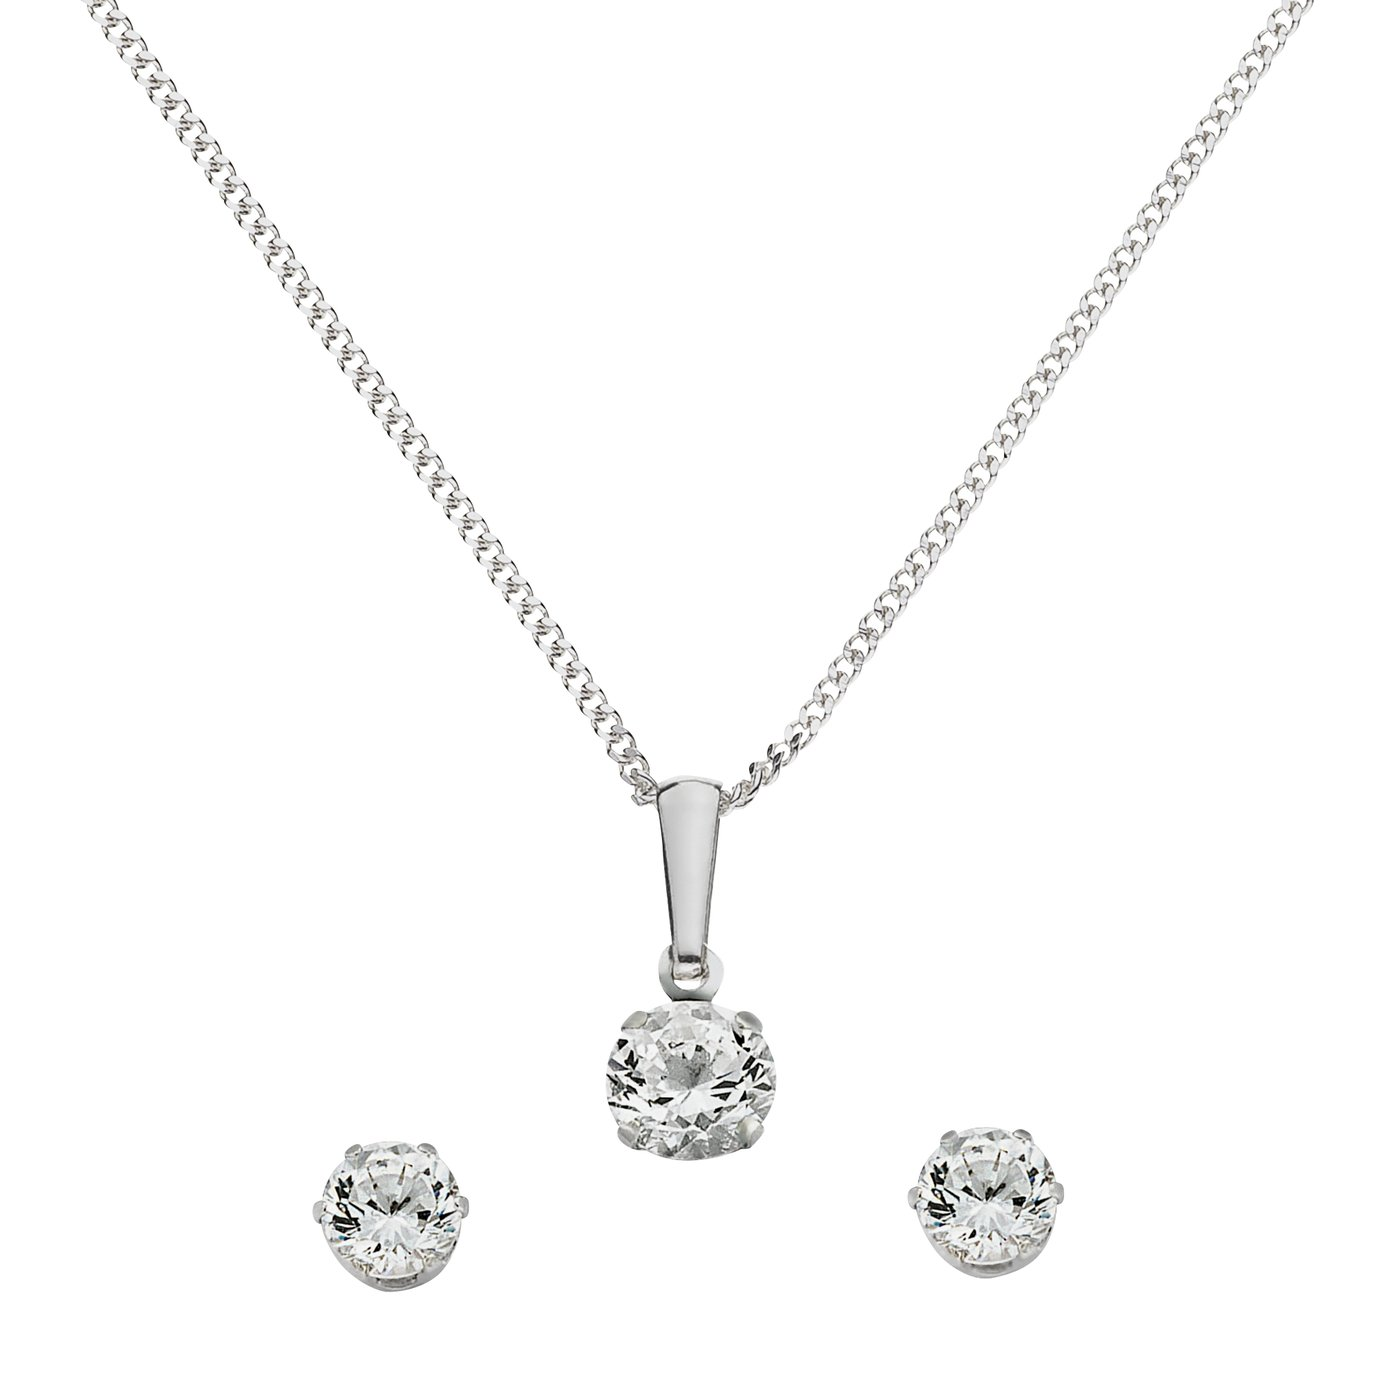 Sterling Silver - Cubic Zirconia Pendant and Earrings Set.